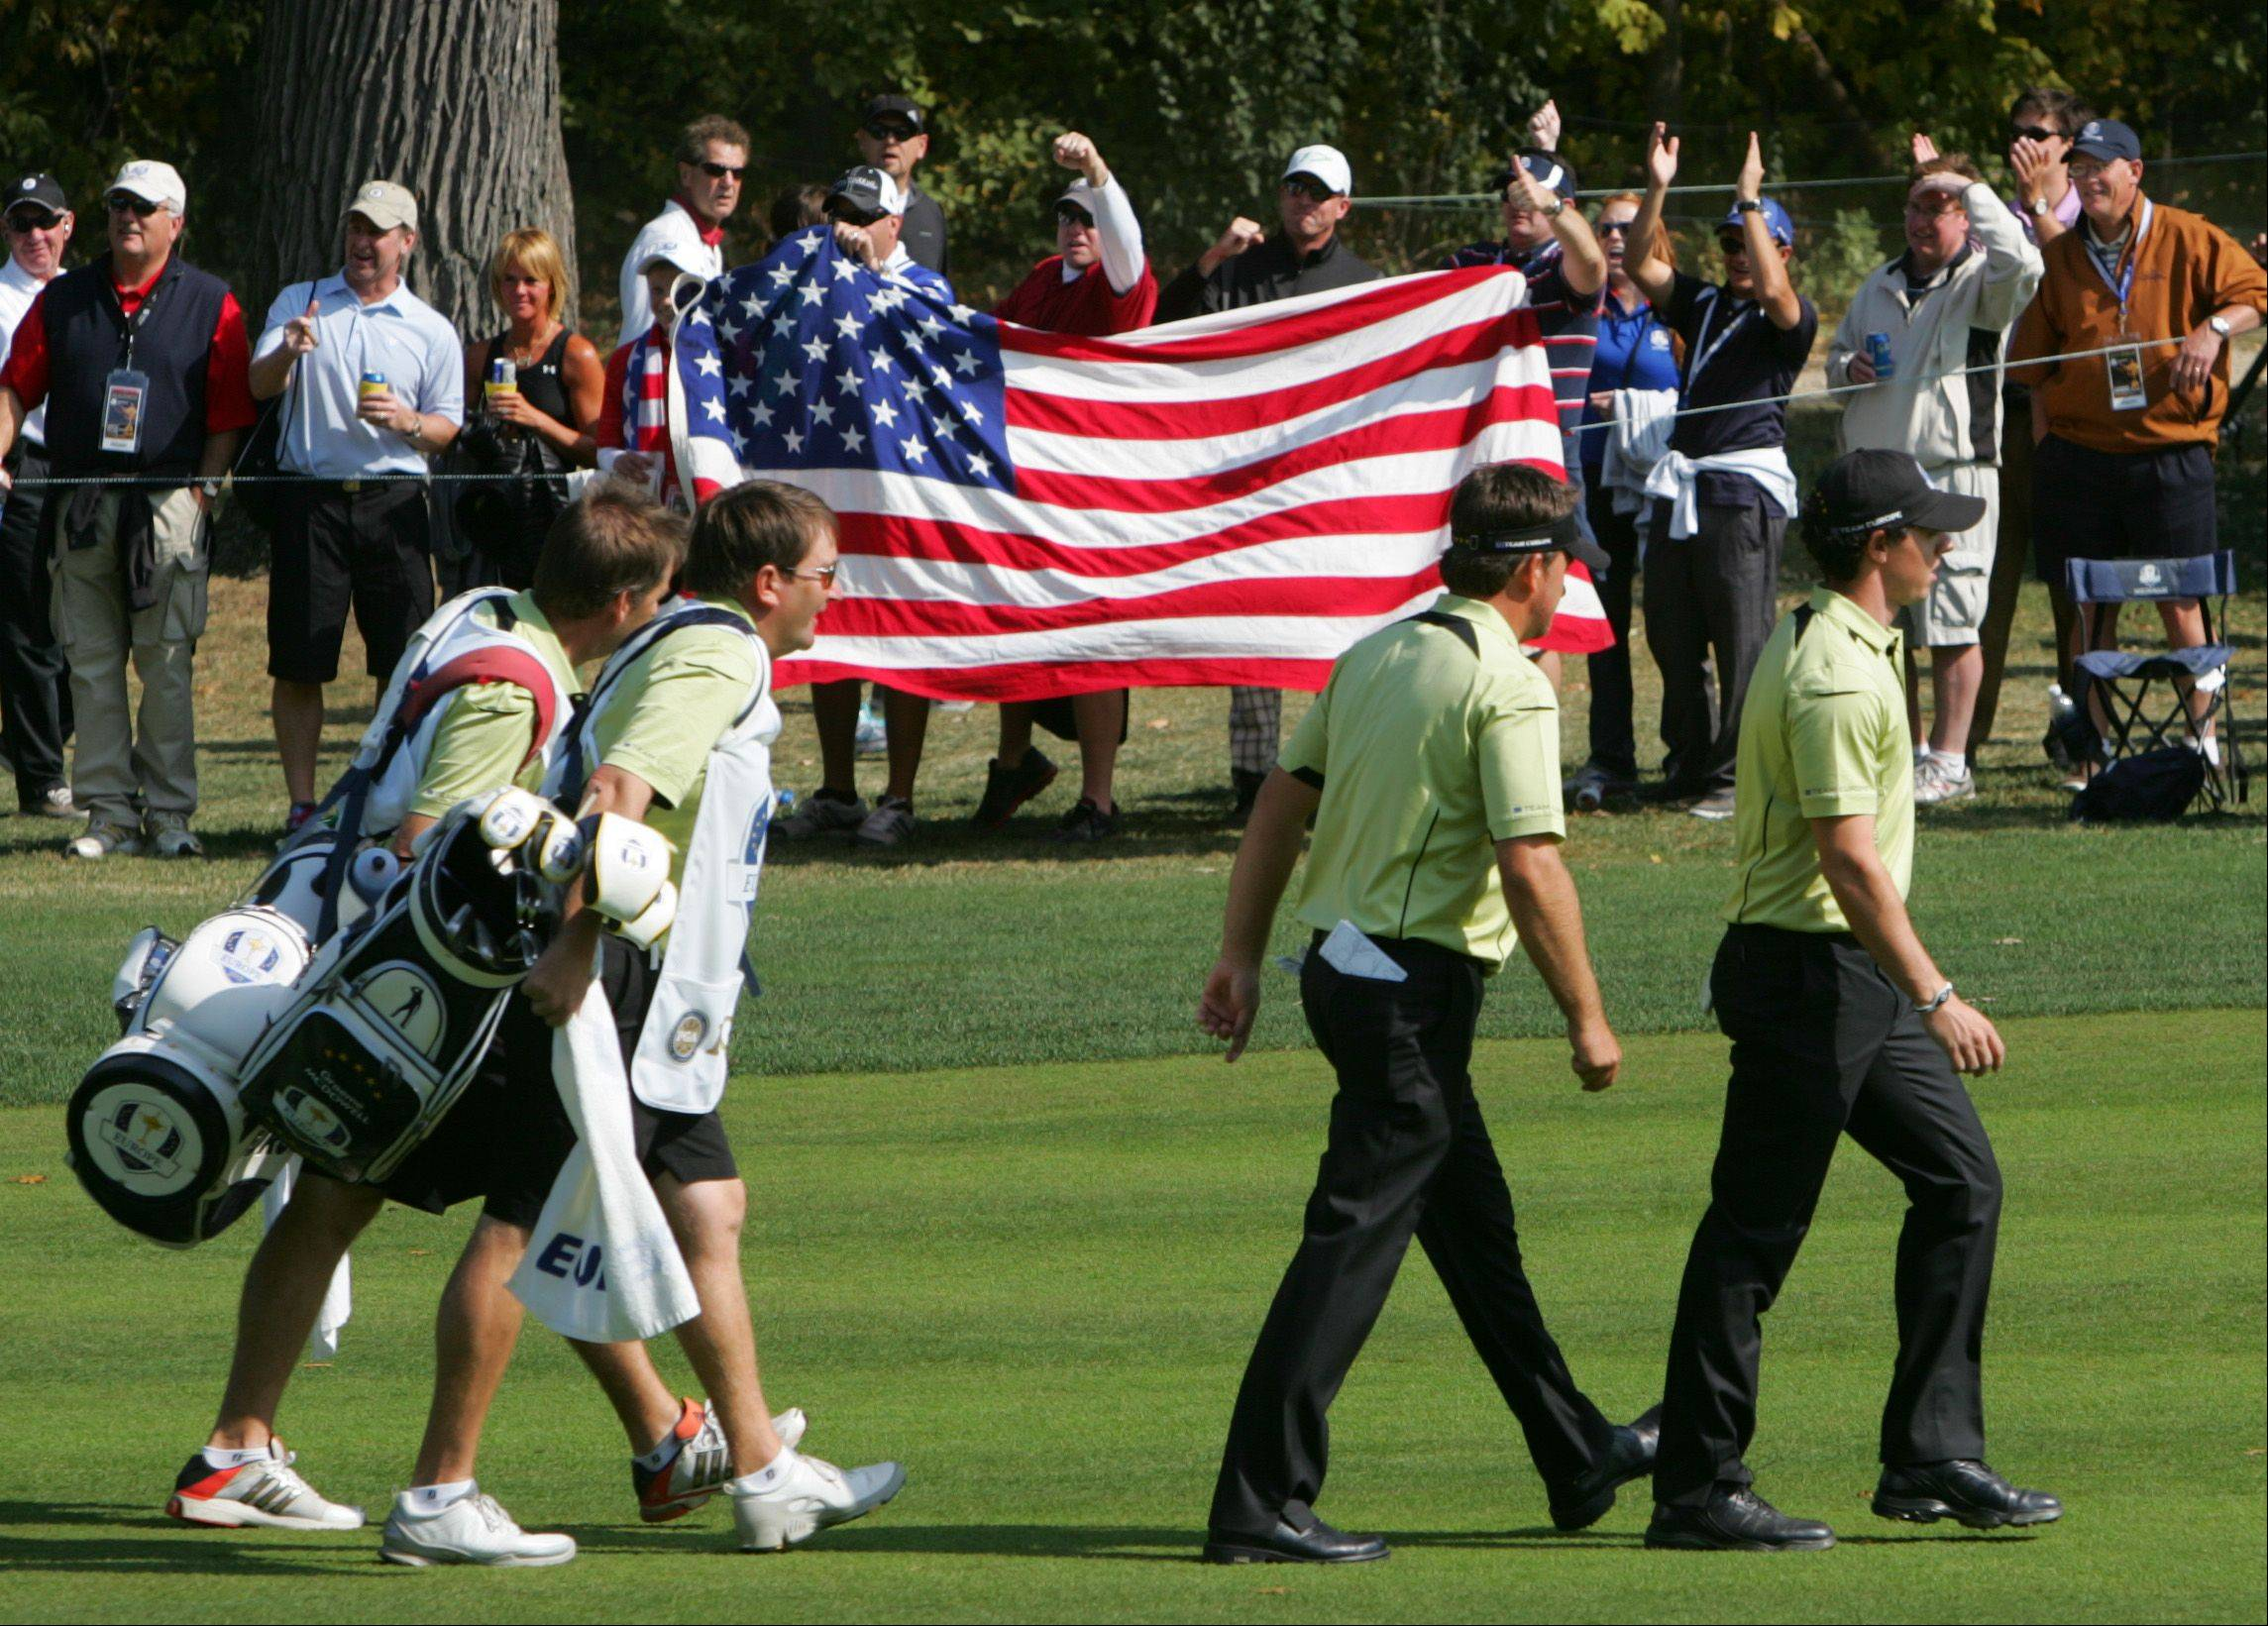 Team Europe teammates Graeme McDowell and Rory McIlroy stroll a fairway flanked by American fans Friday afternoon.